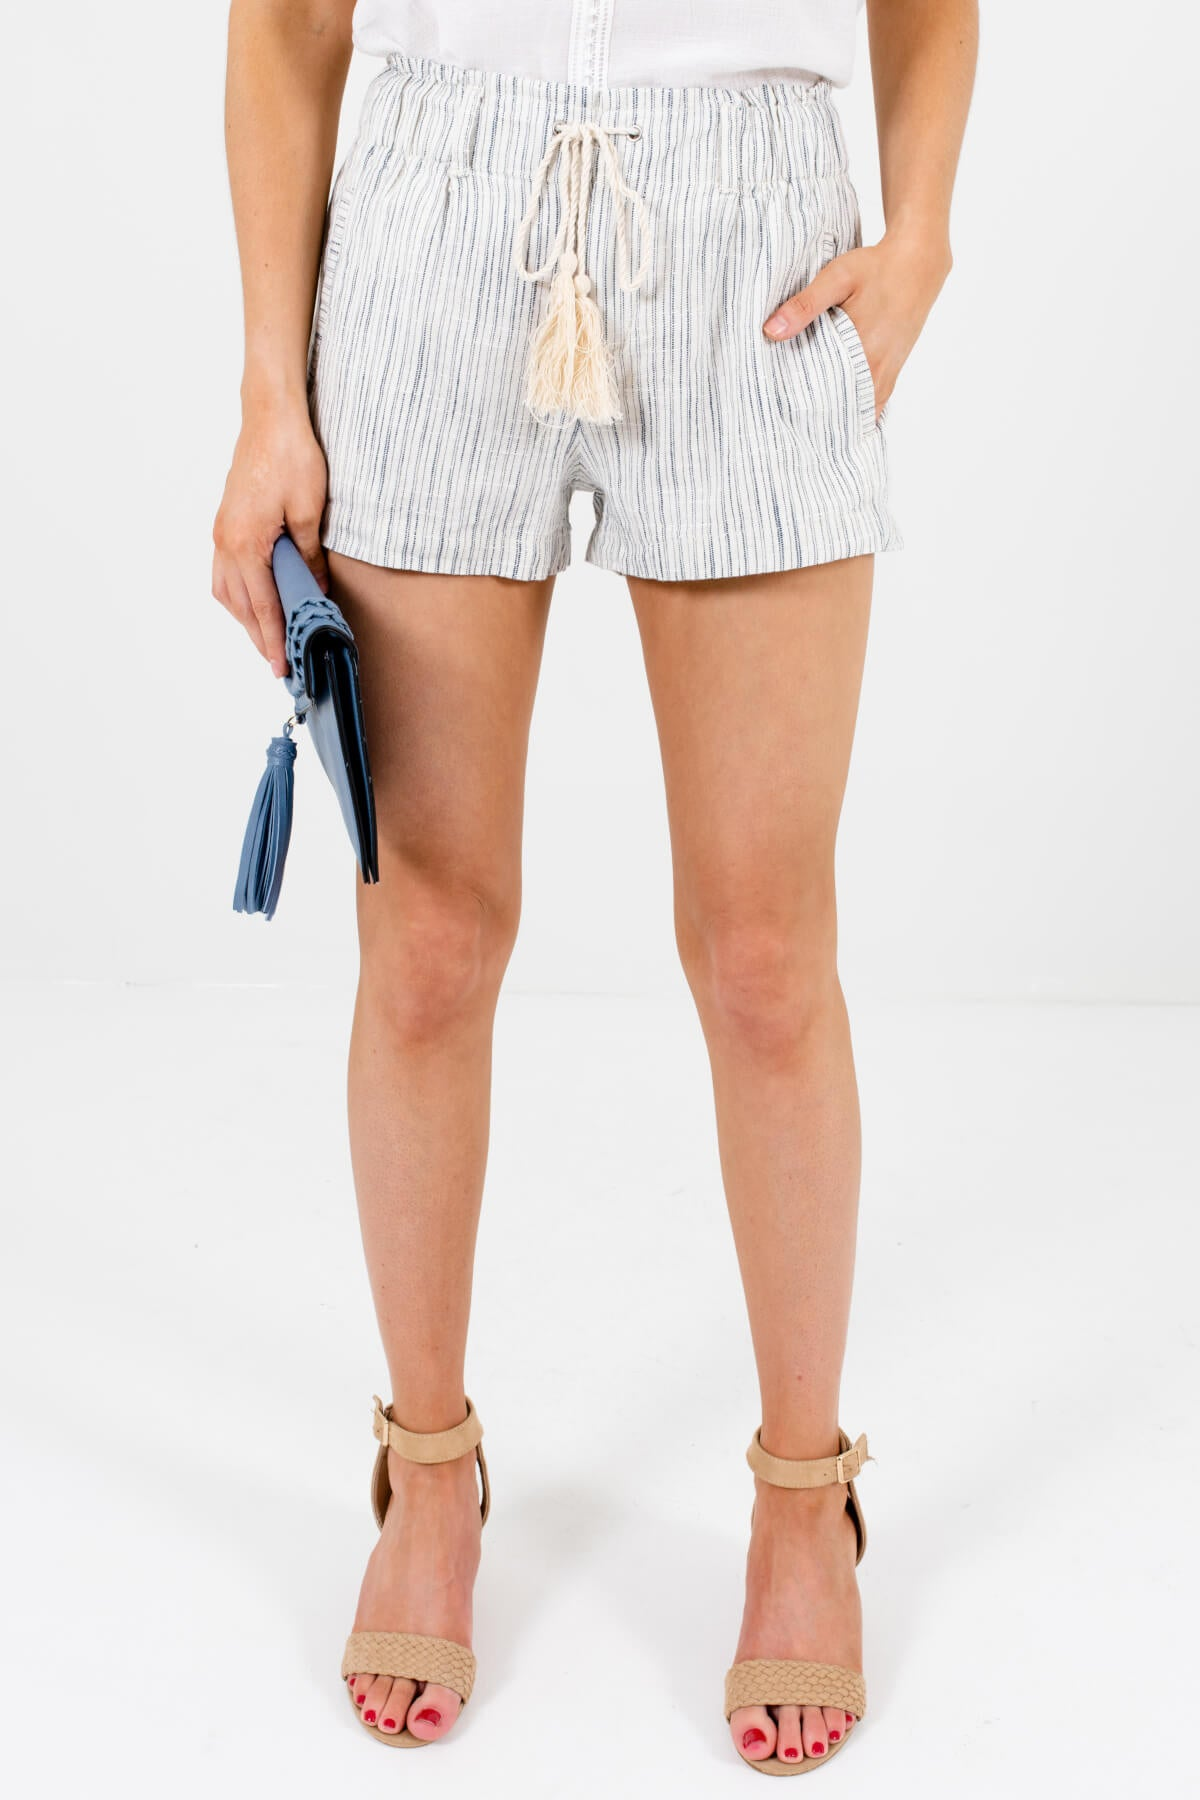 Cream and Blue Striped Boutique Shorts for Women